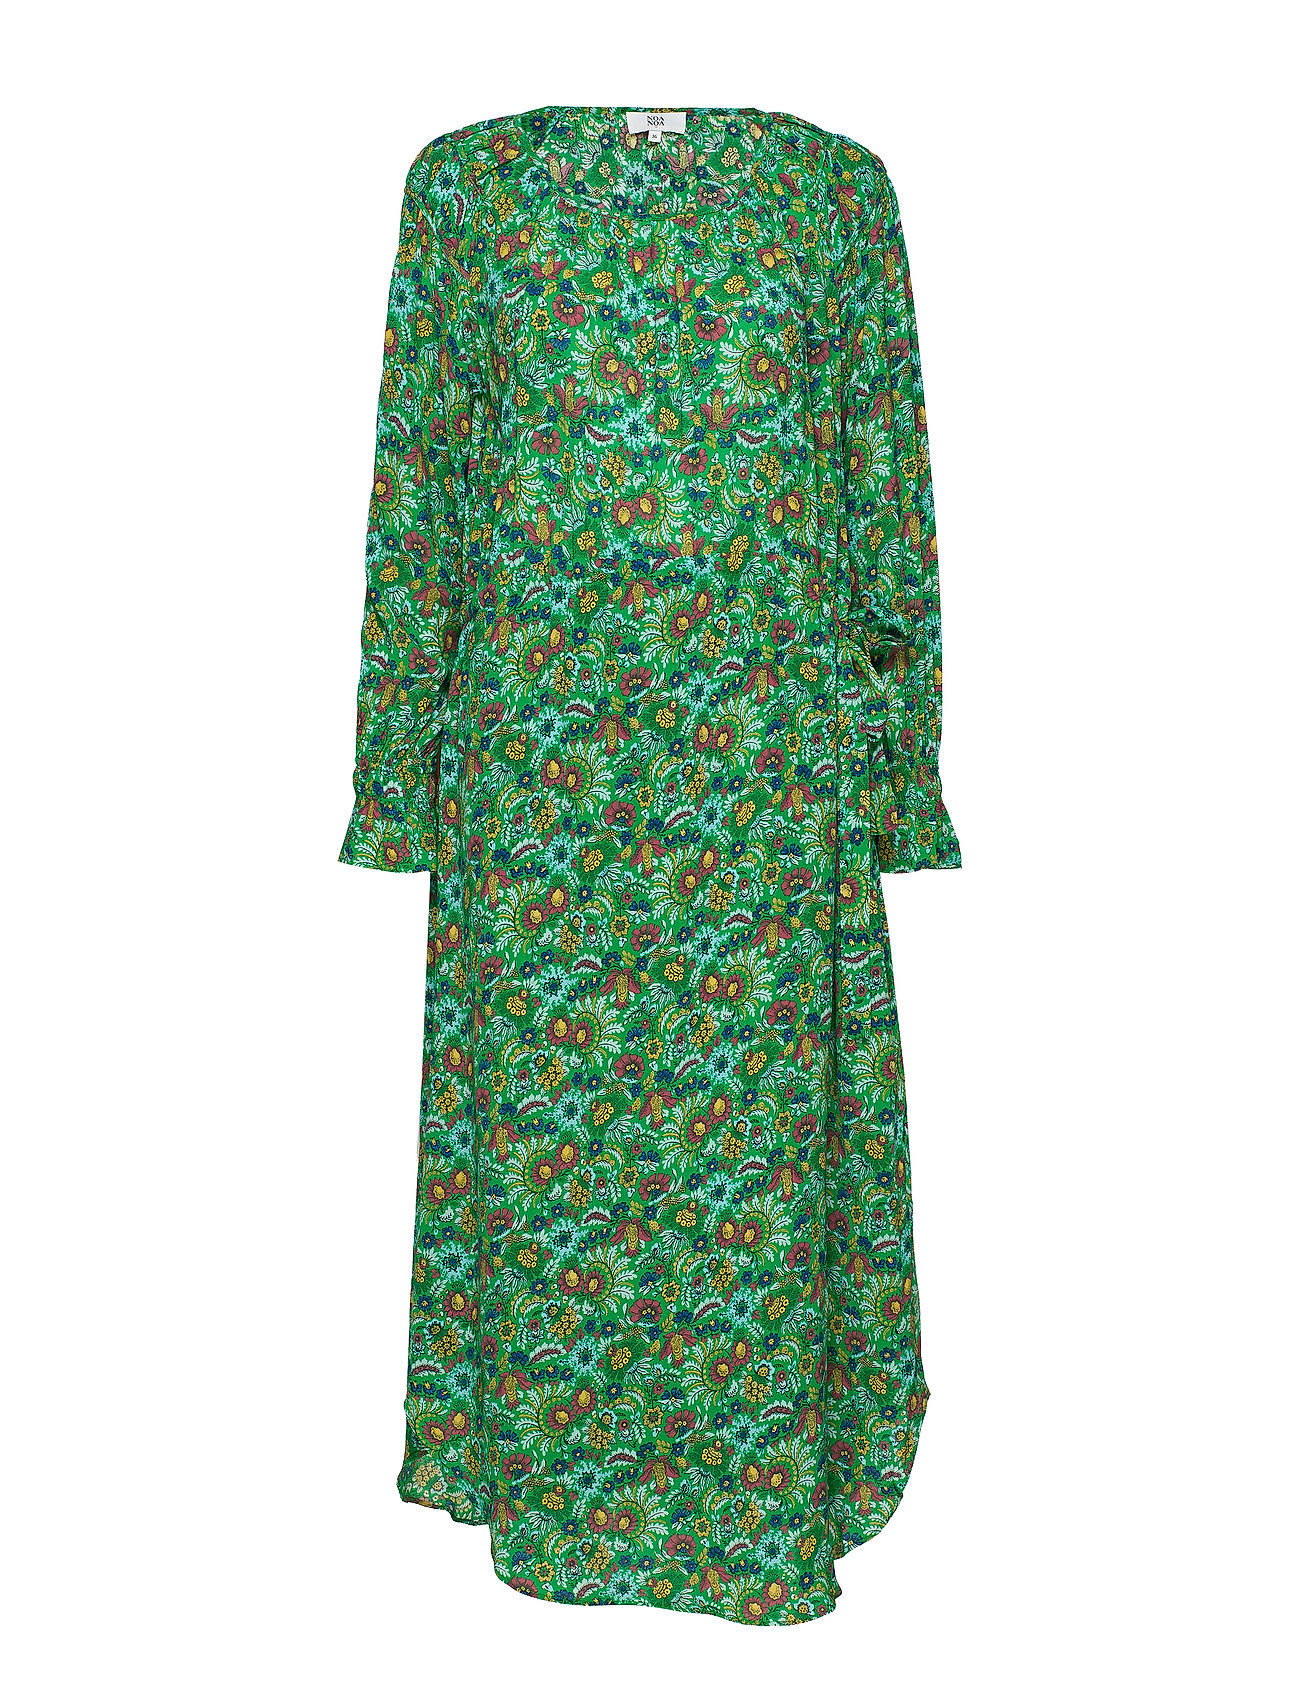 Noa Noa Dress long sleeve - PRINT GREEN